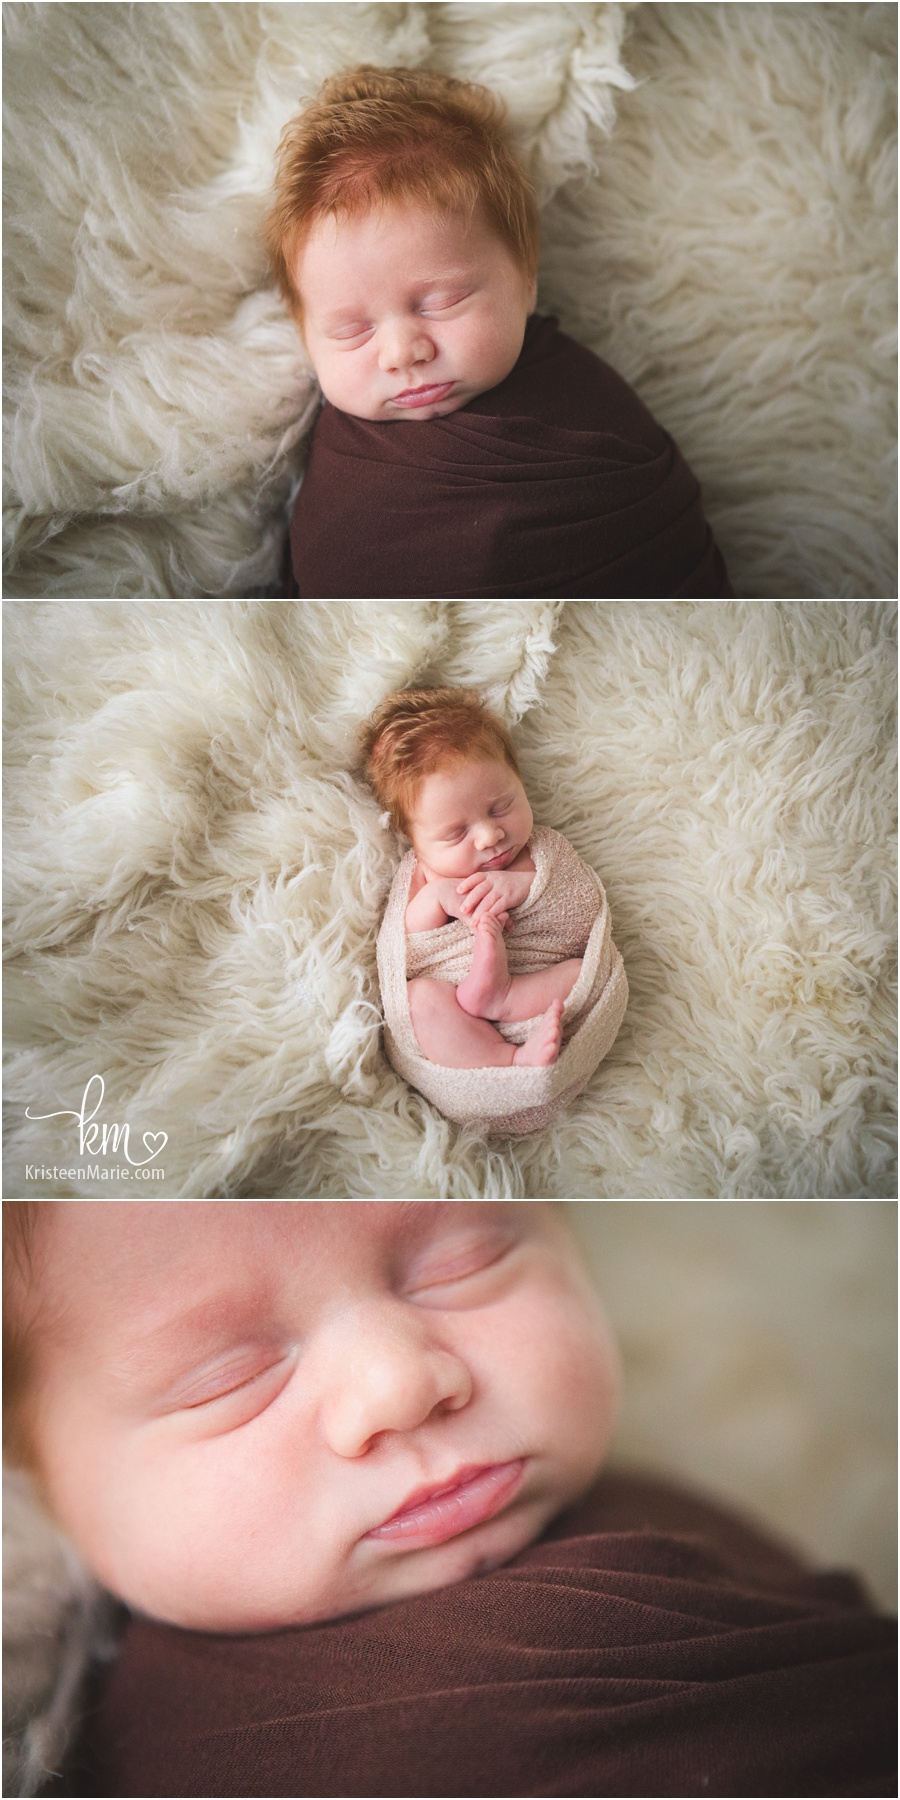 cream and brown - newborn photography - sleeping baby